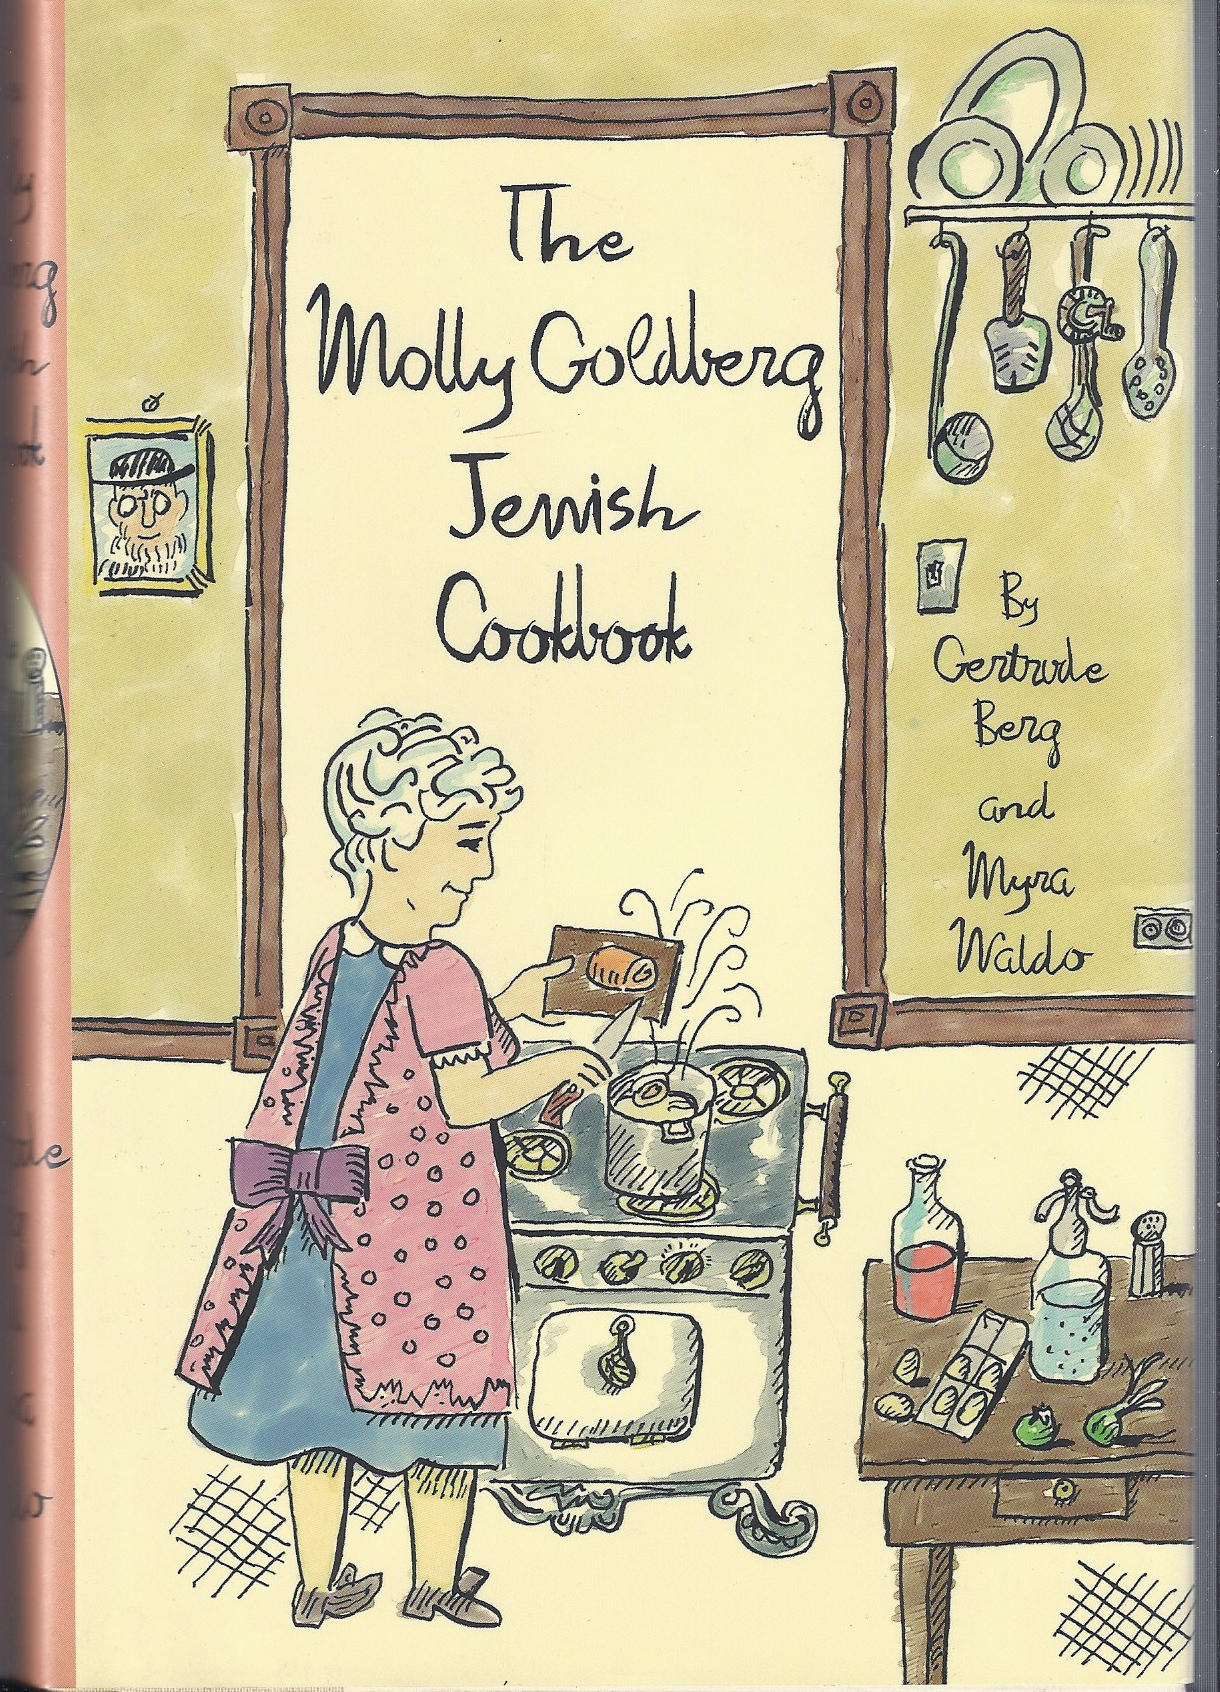 Image for The Molly Goldberg Jewish Cookbook